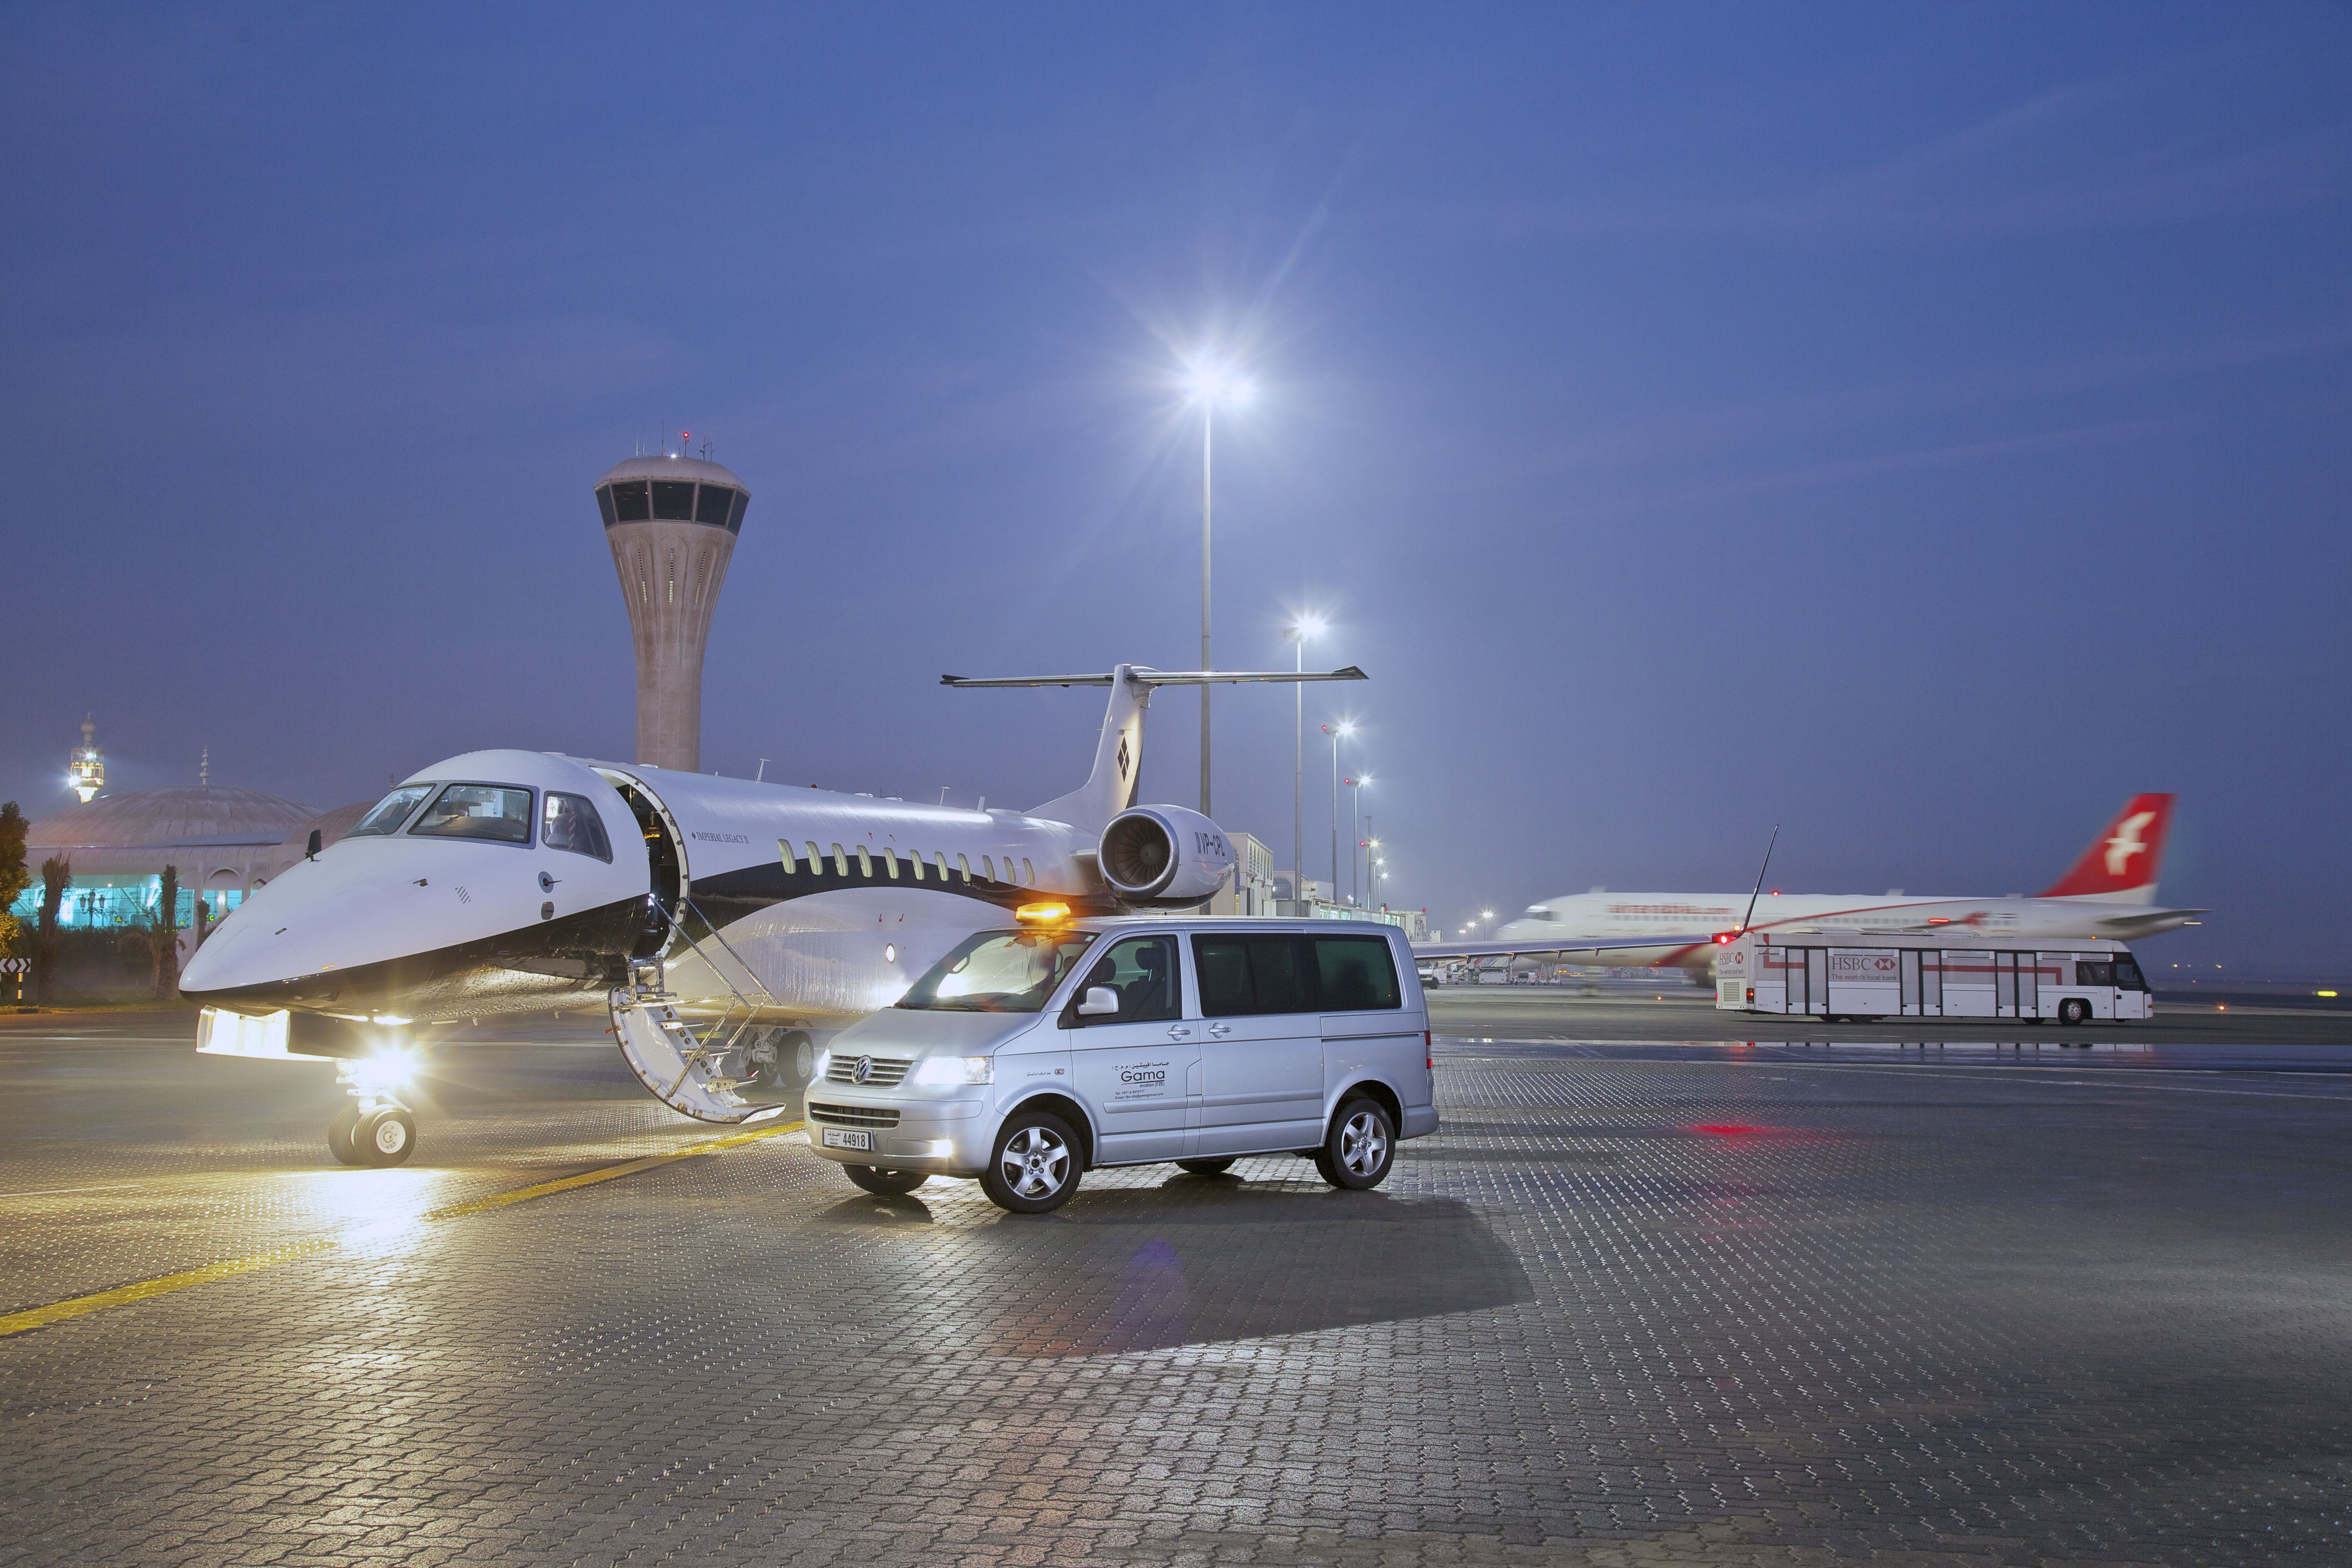 Blue apron uae - Gama Aviation S Fbo At Sharjah In The Uae Achieved A 70 Percent Increase In Traffic During 2013 Photo Gama Aviation